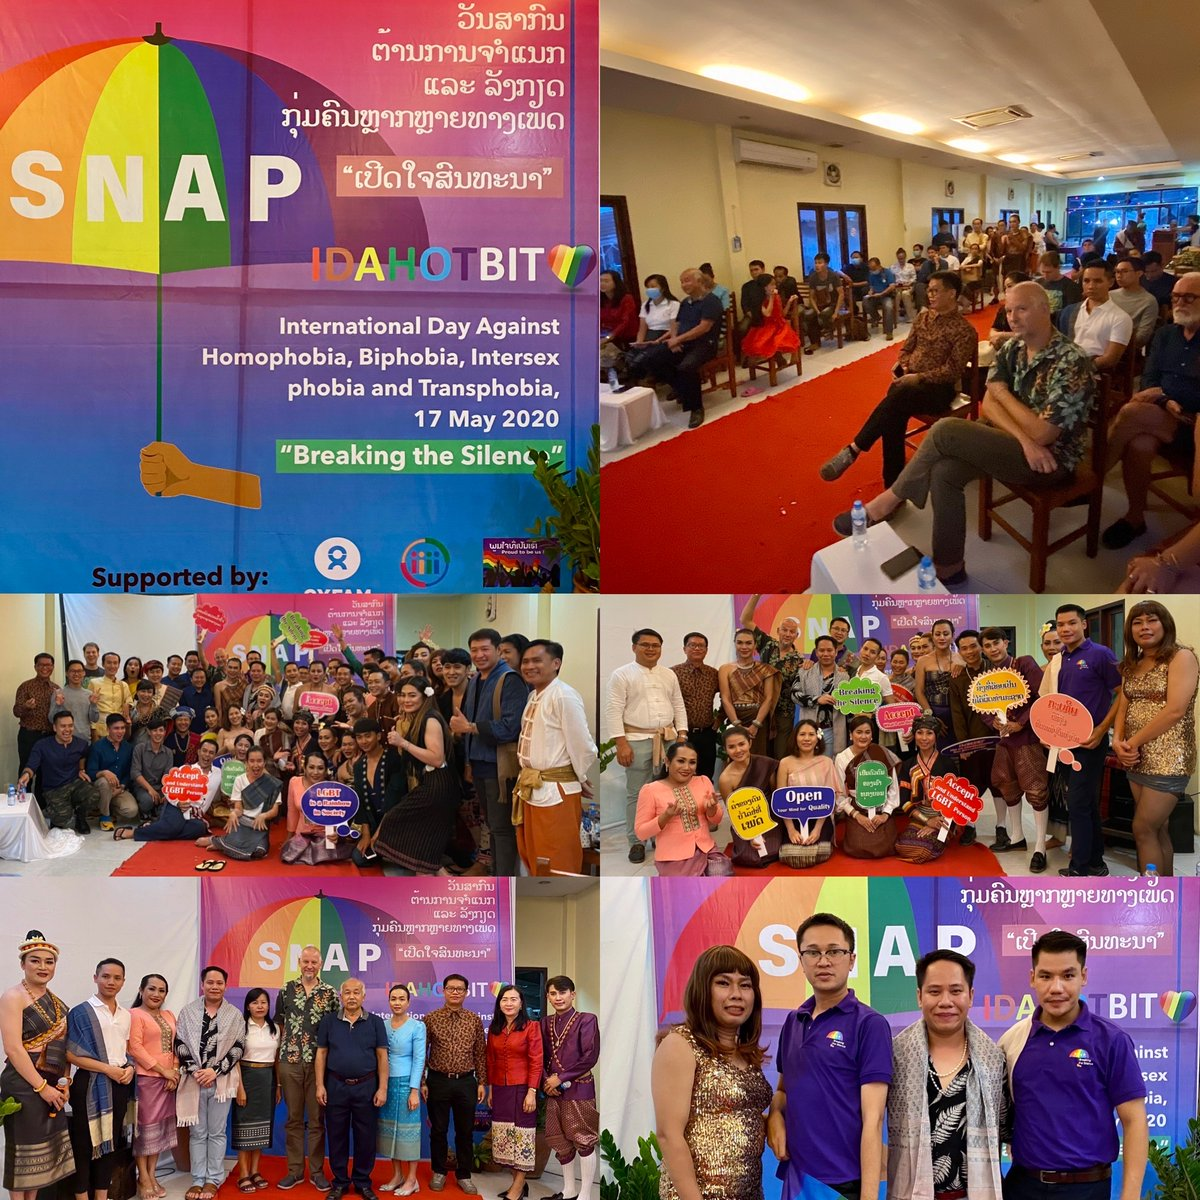 """@Proudtobeuslaos is delighted to jointly organise the first ever #IDAHOBIT Day 2020 in Luang Prabang with CHIAS.  This is a part of """"Strengthening Networks and Advocating for the Promotion of LGBTI Rights"""" Project supported by @Oxfam in Laos.  @CortadaFranc of @OxfamIntermon https://t.co/EUqW4PAFcM"""